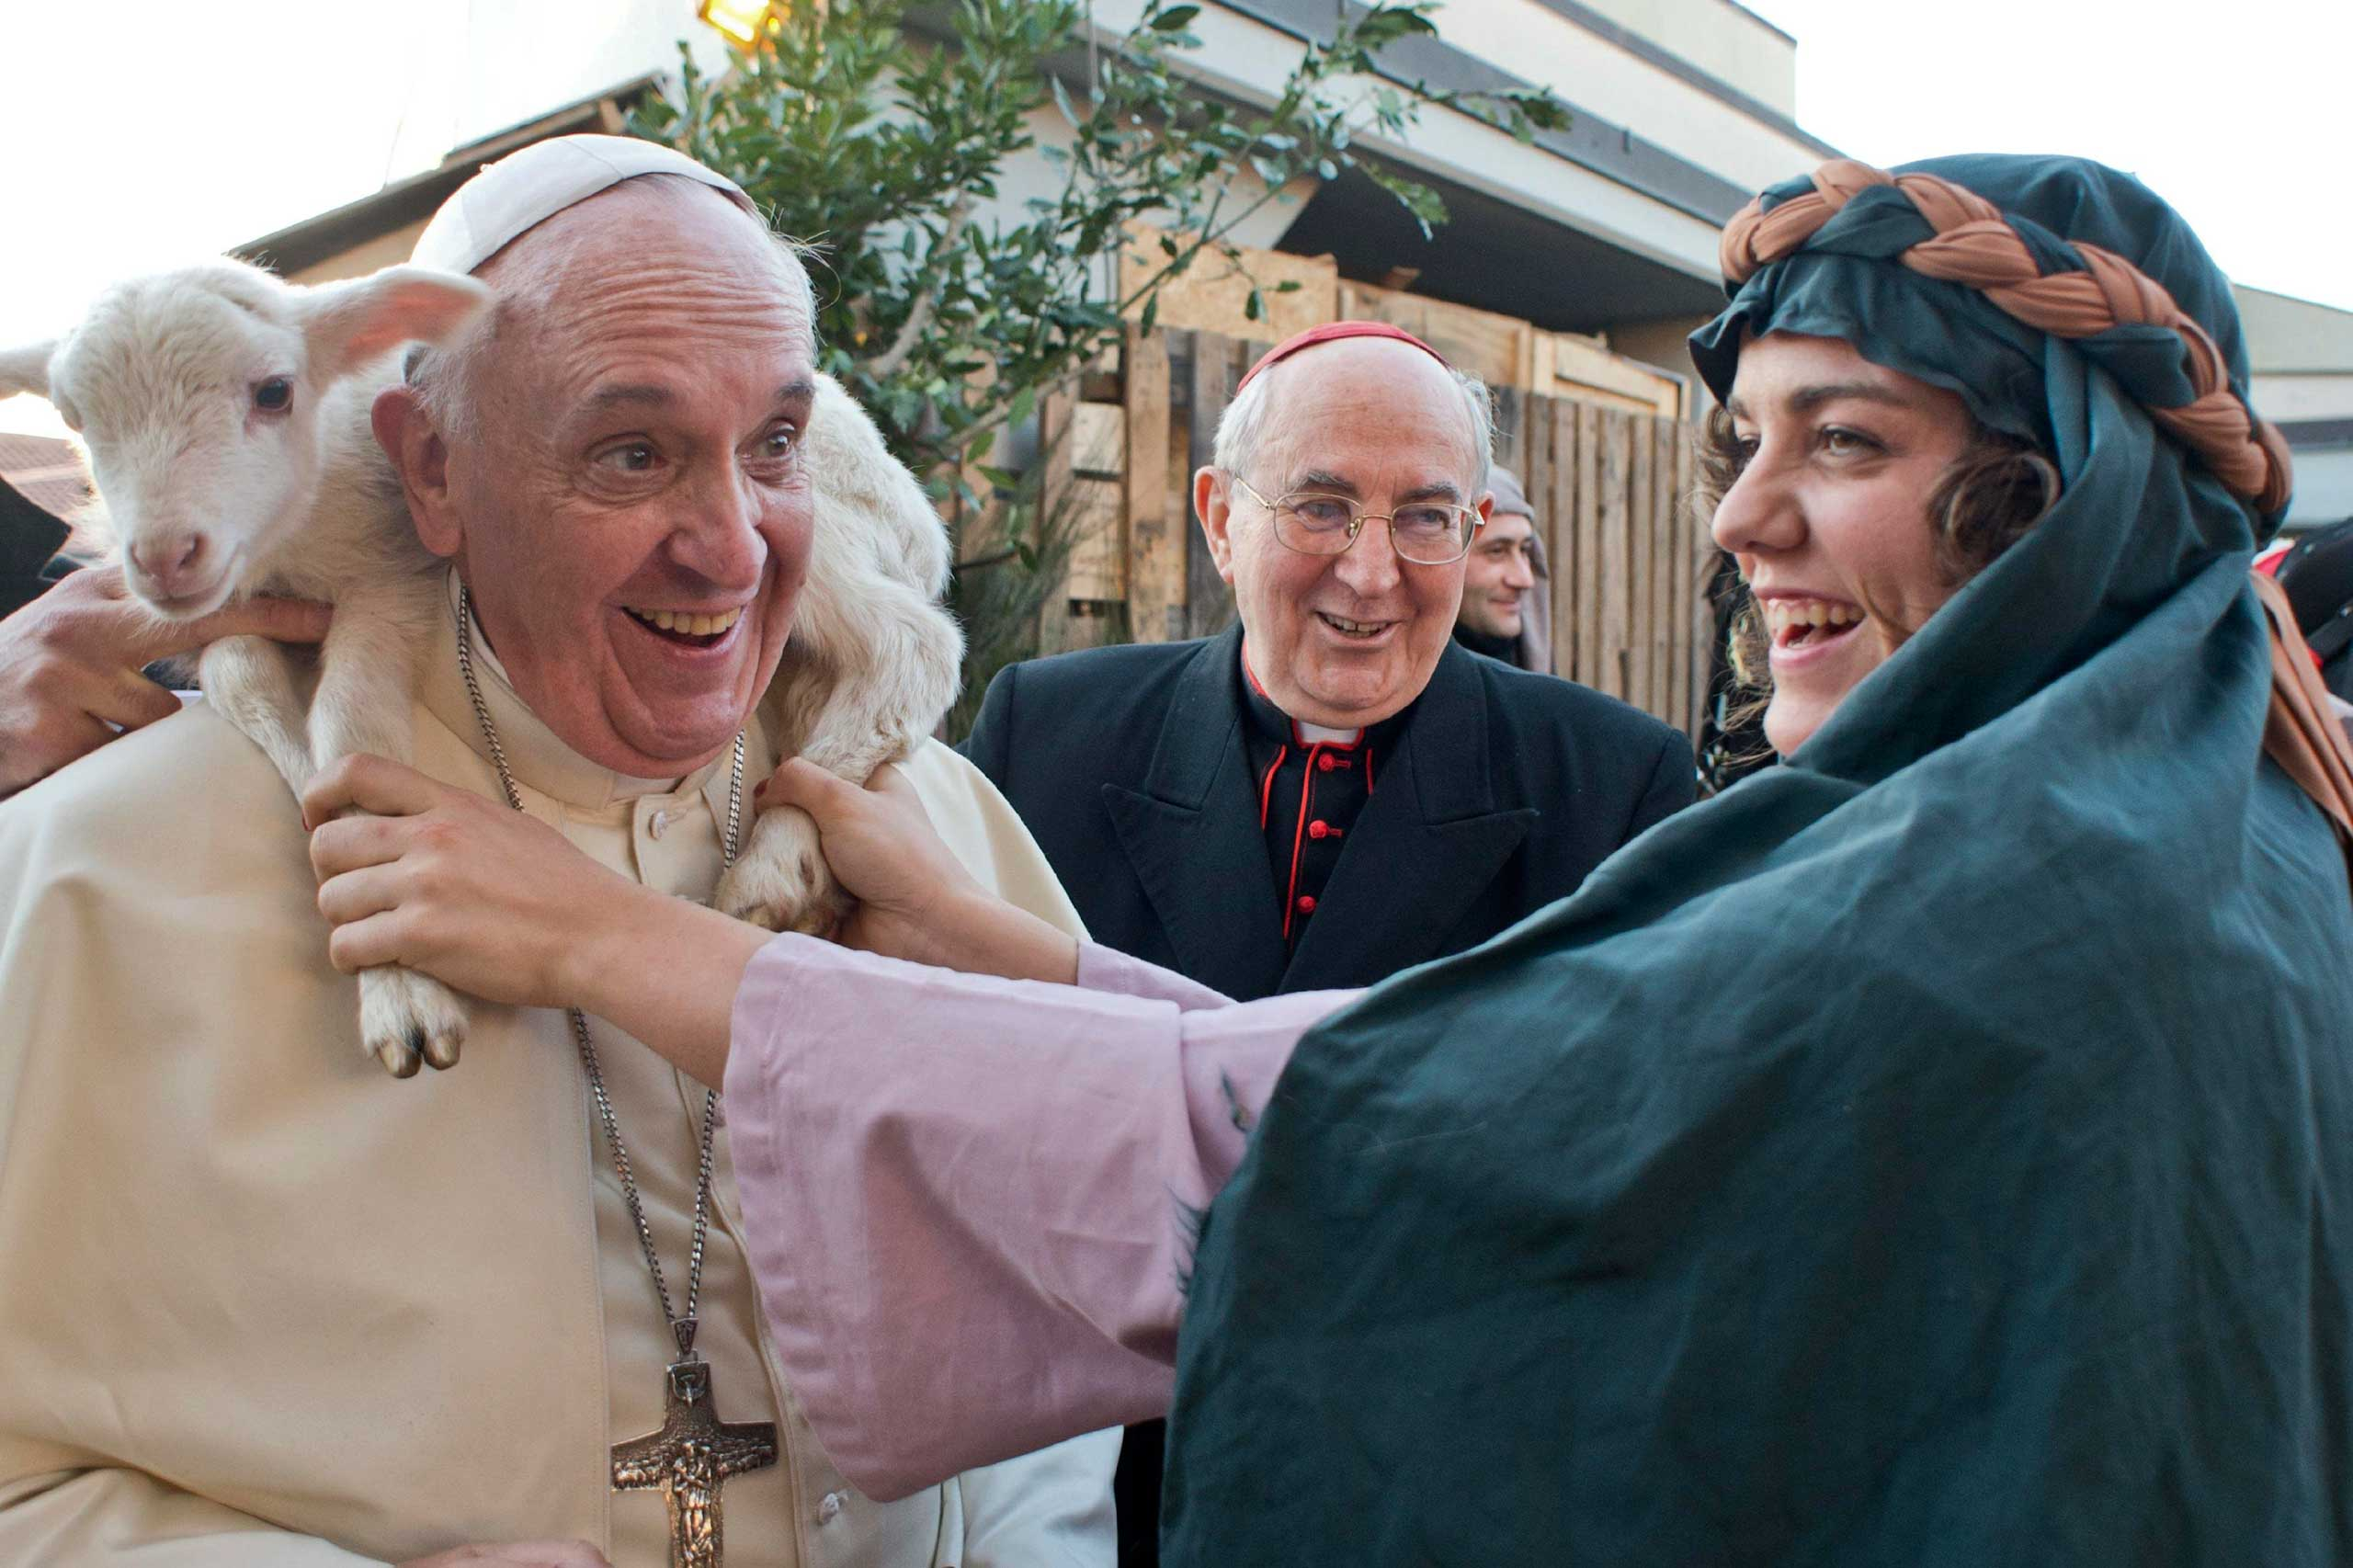 A woman dressed as a character from the nativity scene puts a lamb around the neck of Pope Francis as he arrives to visit the Church of St. Alphonsus Maria de Liguori in the outskirts of Rome, Jan. 6, 2014.